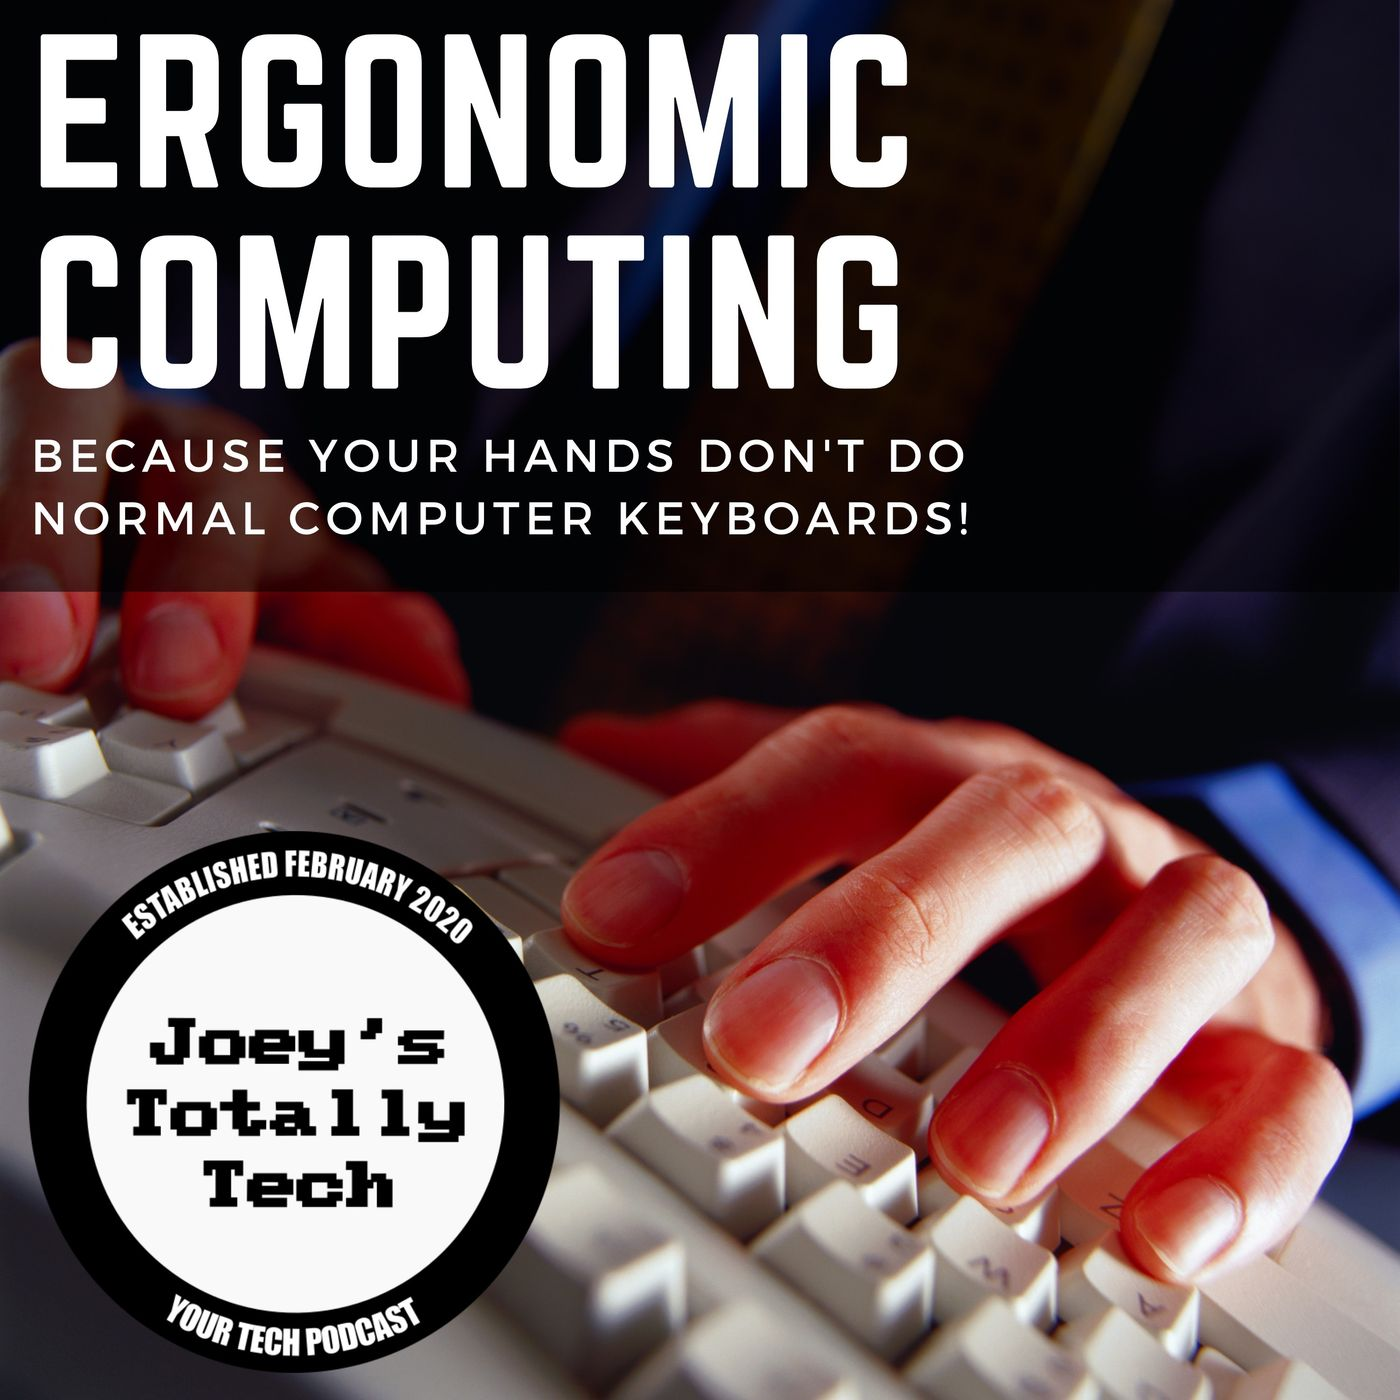 Ergonomic Computing: Because Your Hands Don't Do Normal Computer Keyboards